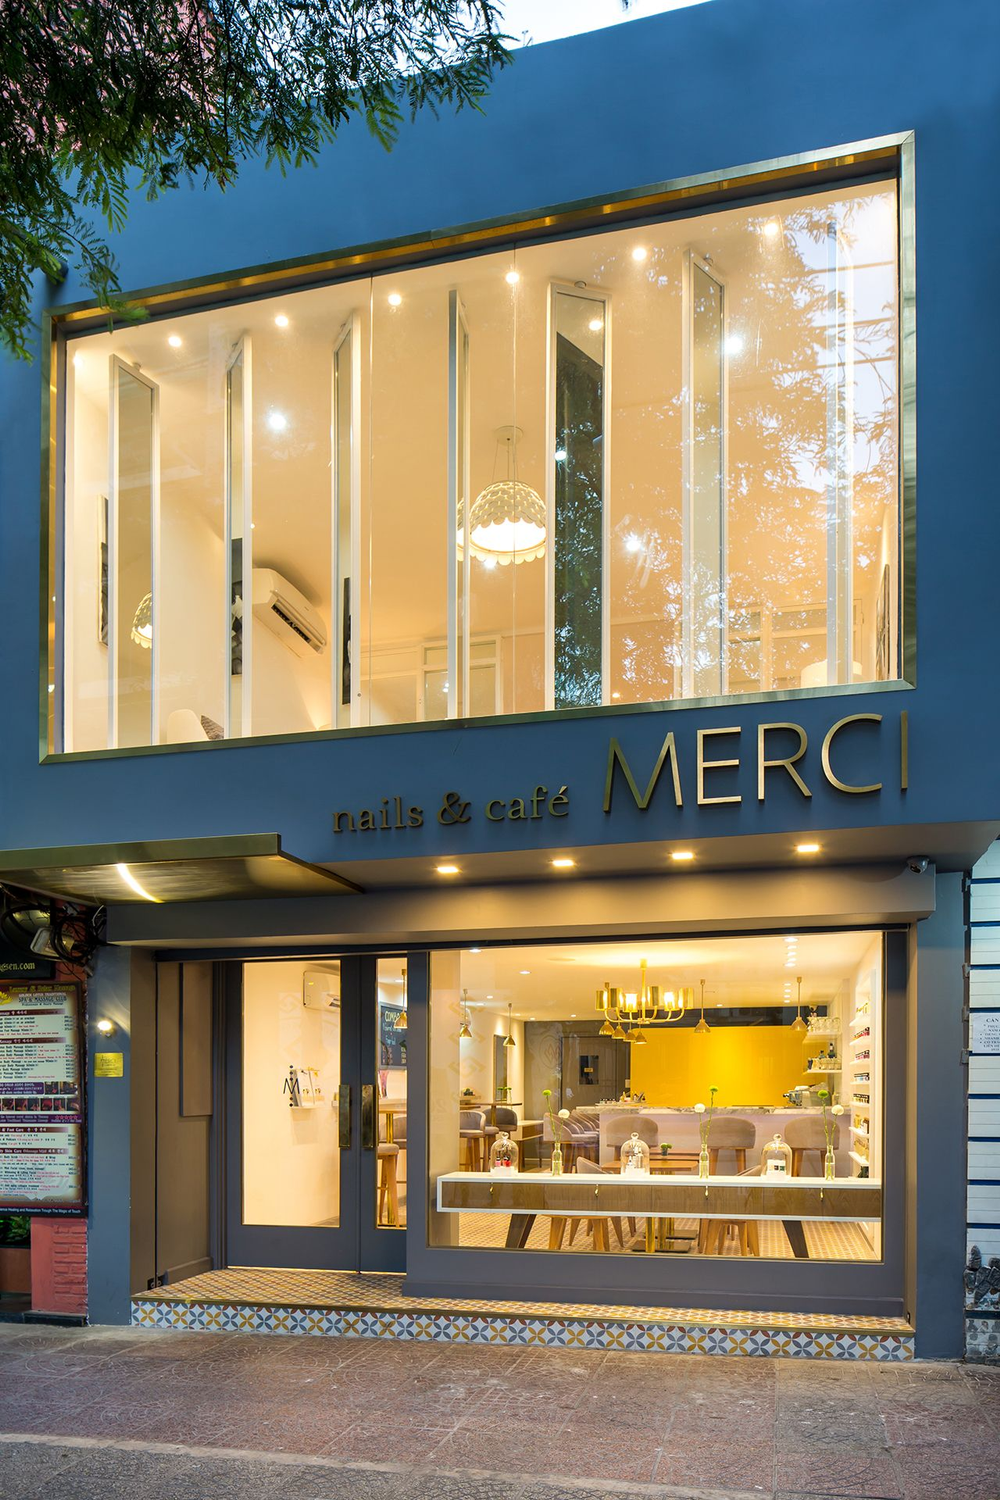 <p>Merci Nails &amp; Cafe in Ho Chi Minh City, Vietnam, resembles boutique salons in the United States.</p>